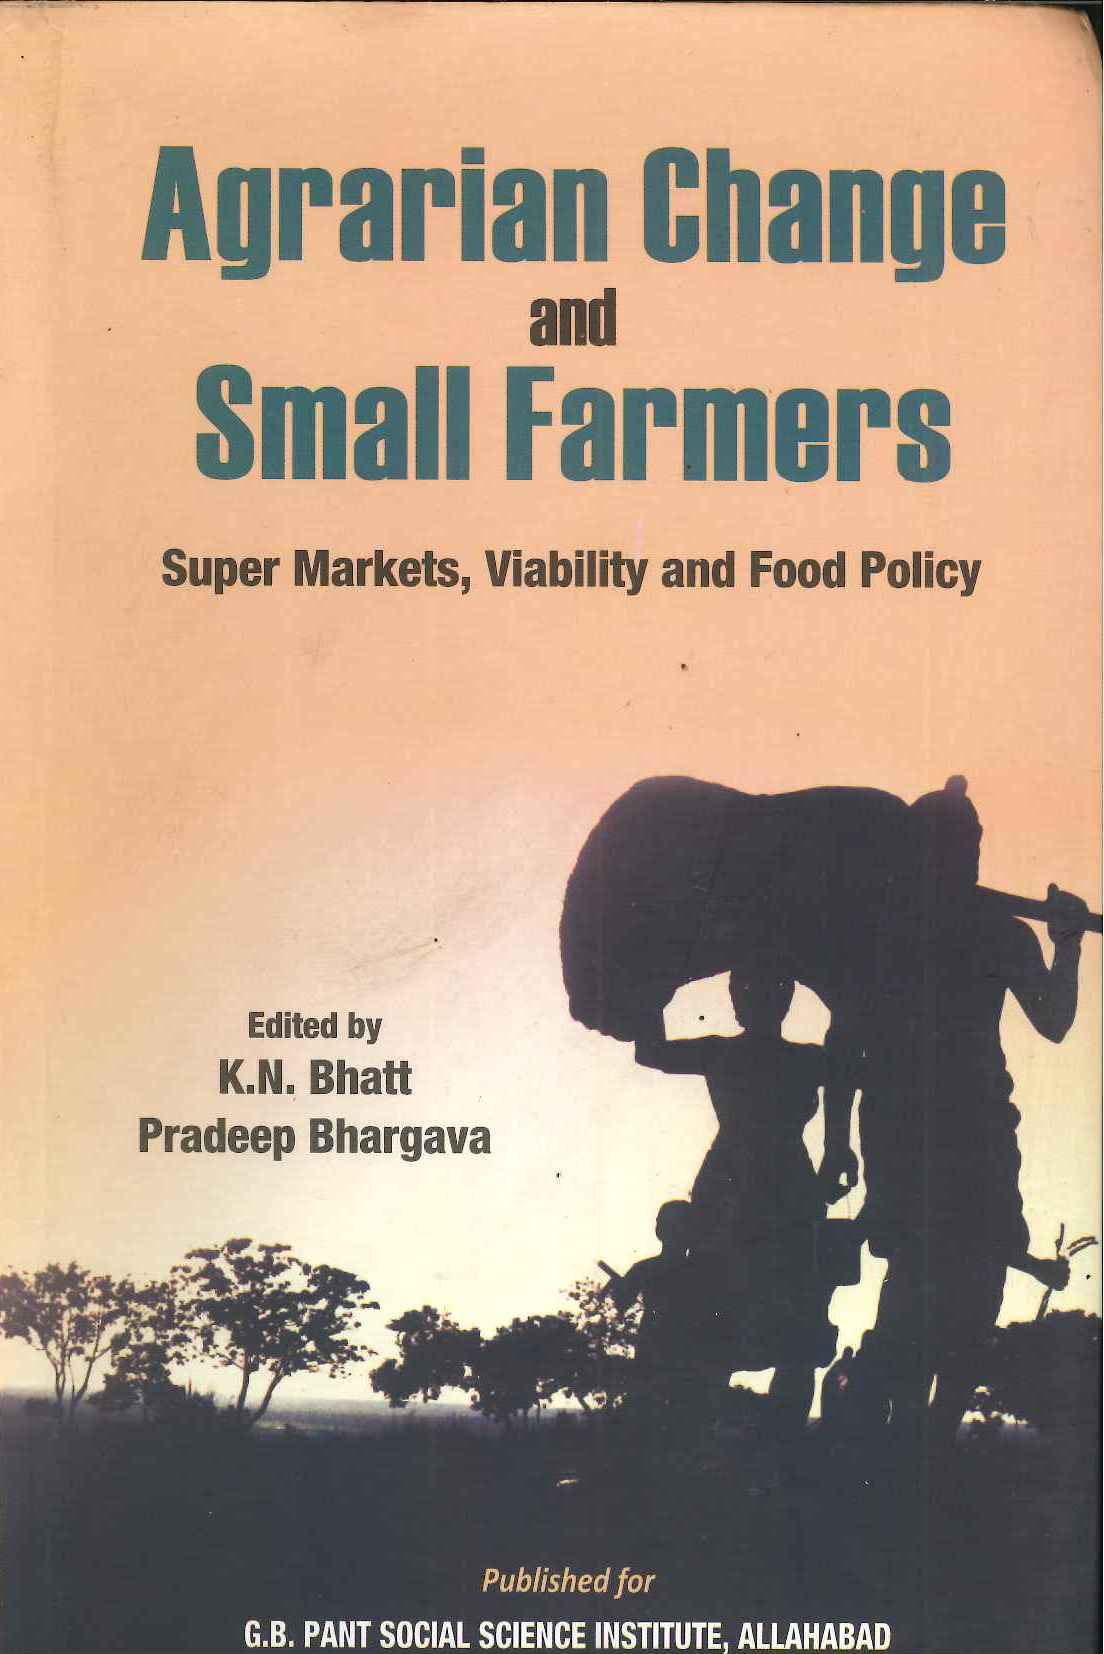 Agrarian Change and Small Farmers